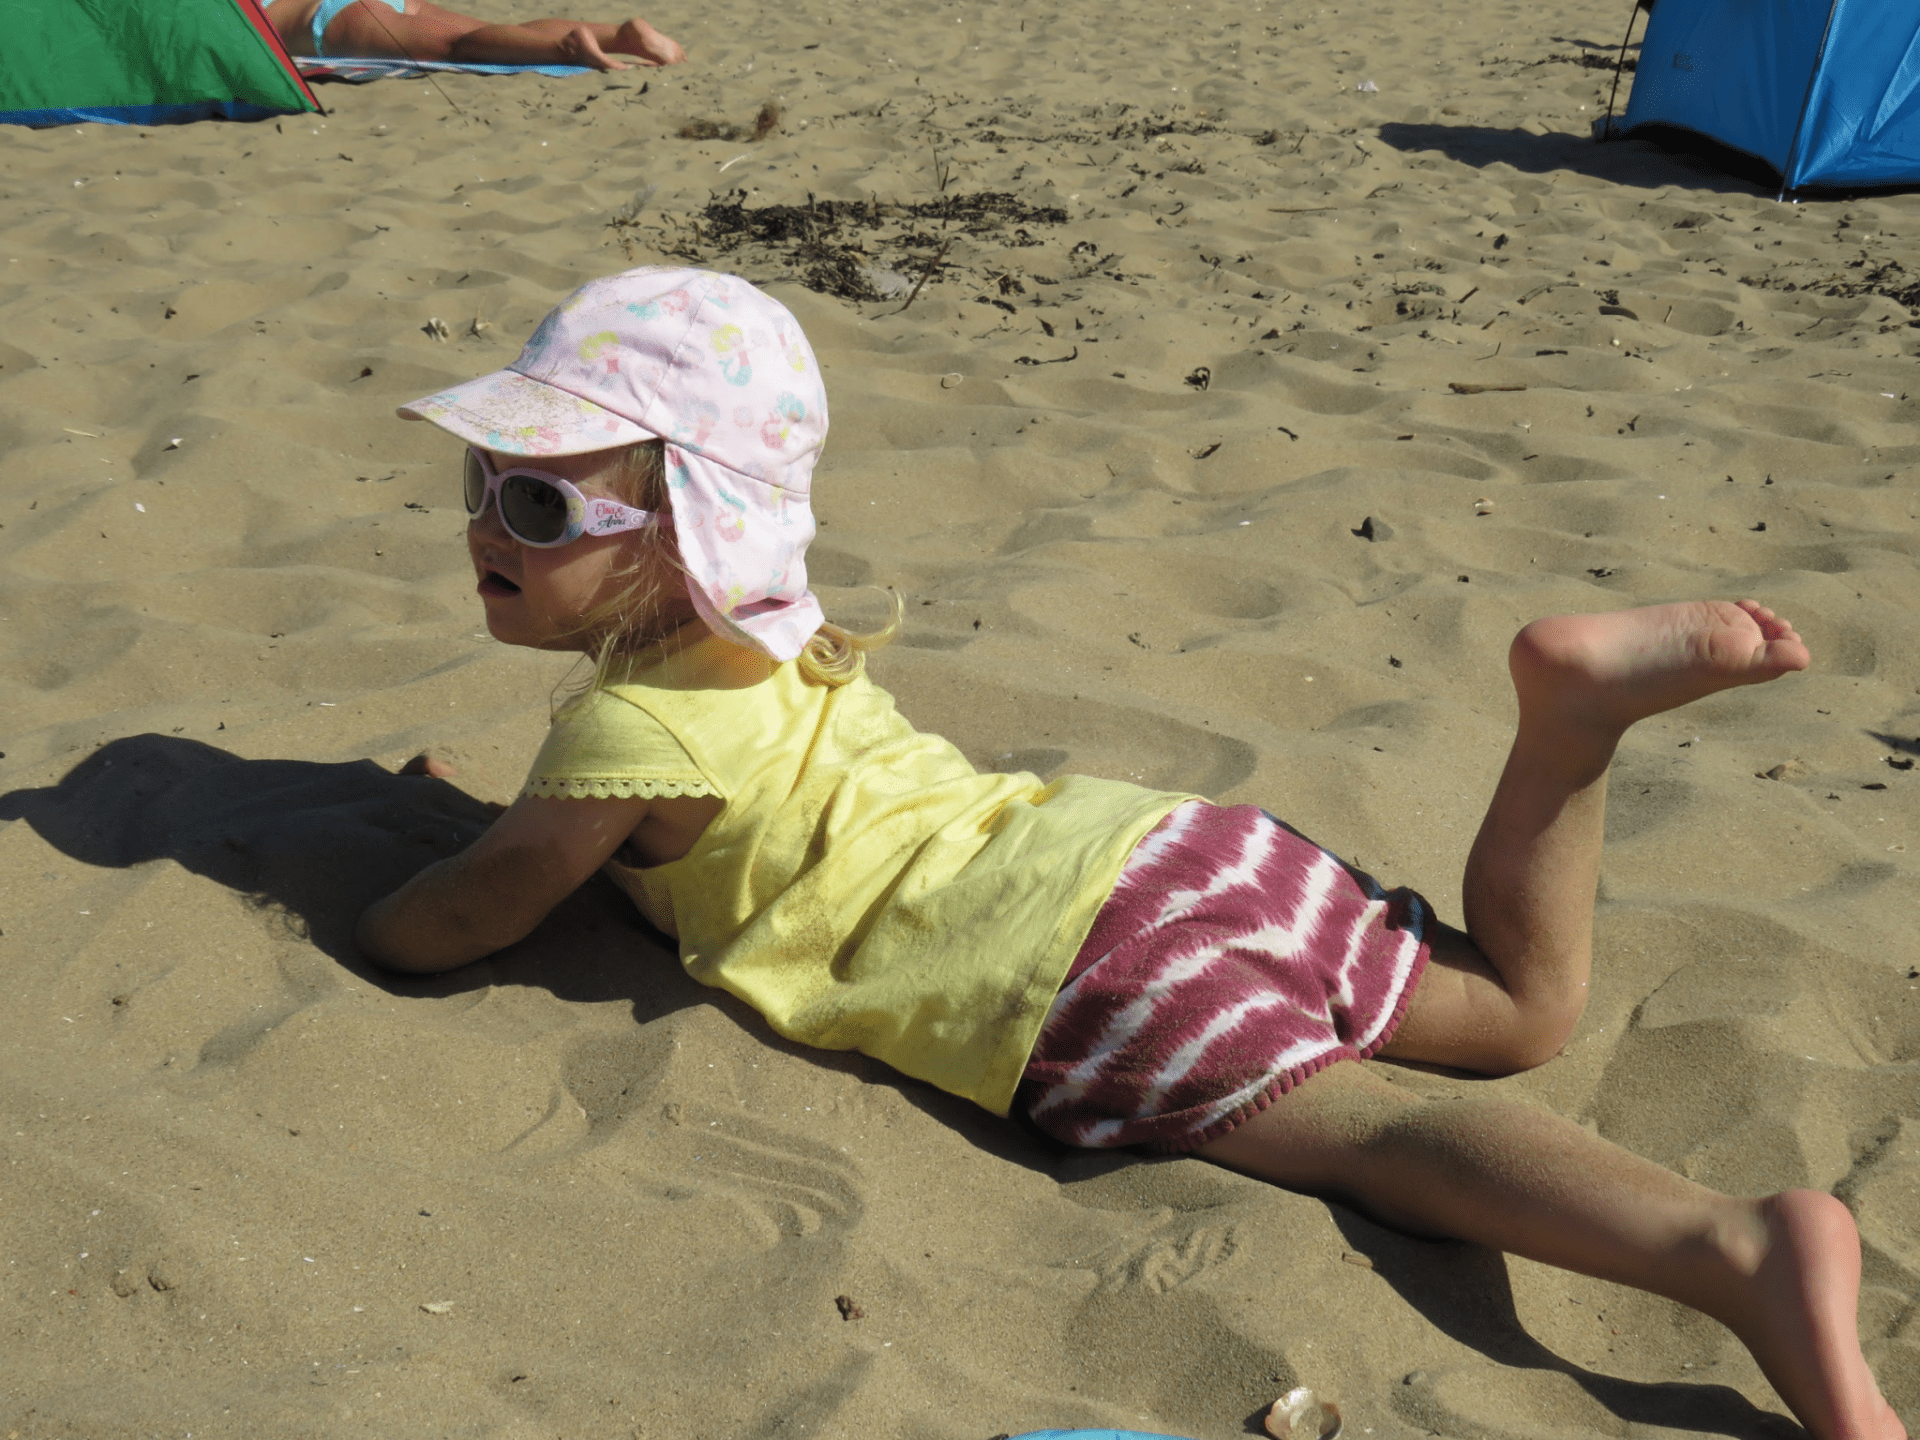 Ha yes you can cover me in suncream mum but then I'm going to make a sand angel and cake myself in sand!